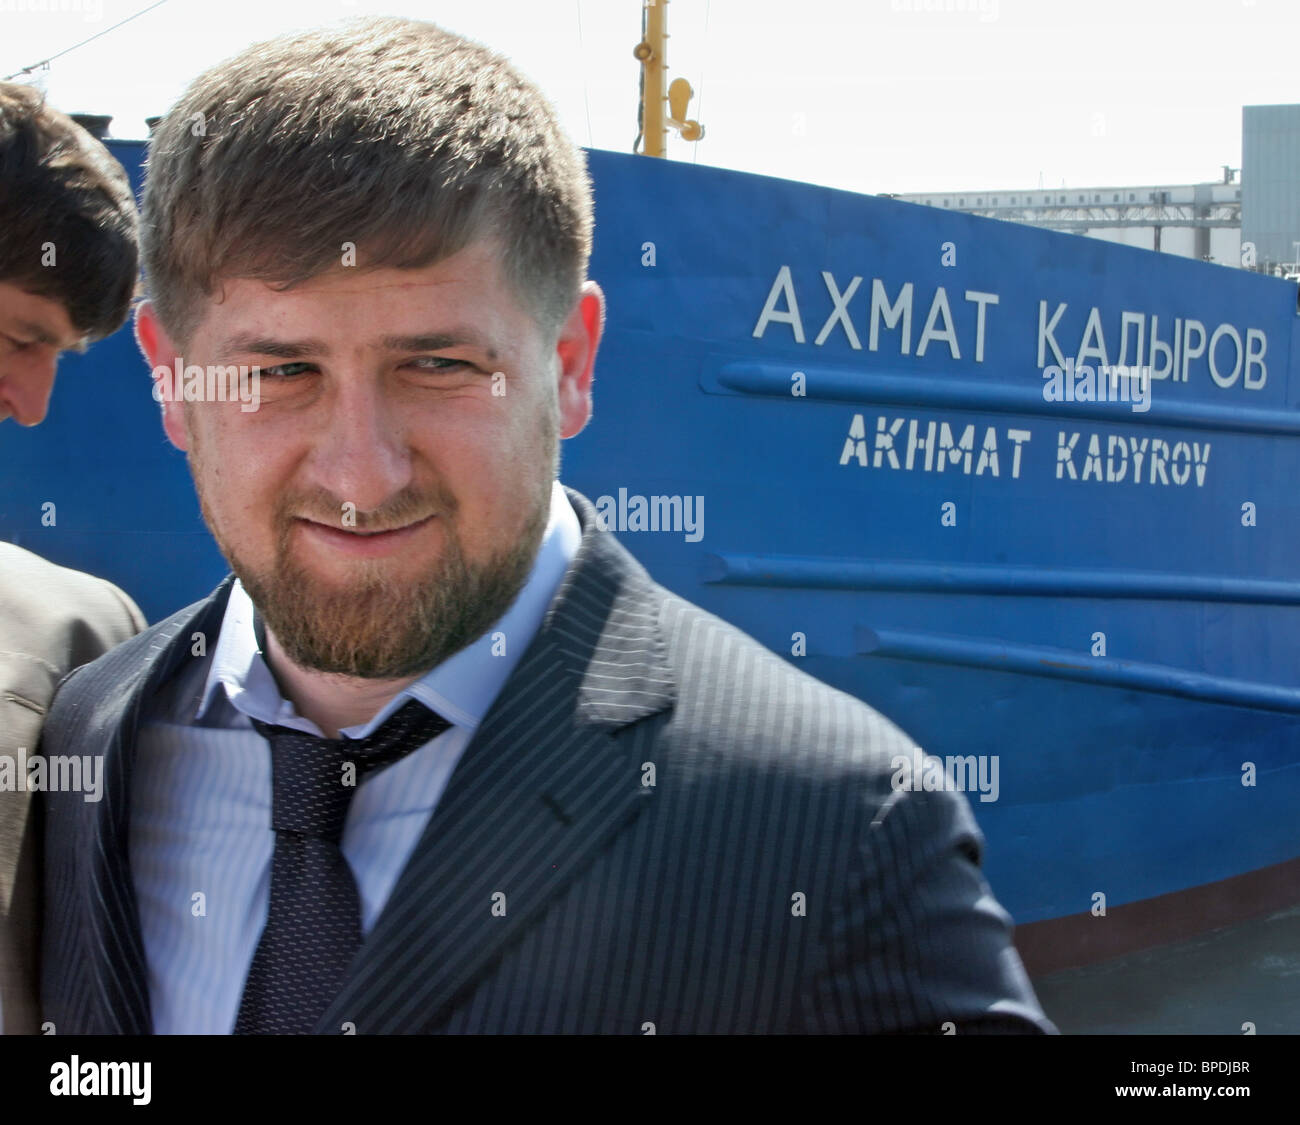 Donrechflot company's dry cargo ship named after first Chechen president Akhmat Kadyrov - Stock Image